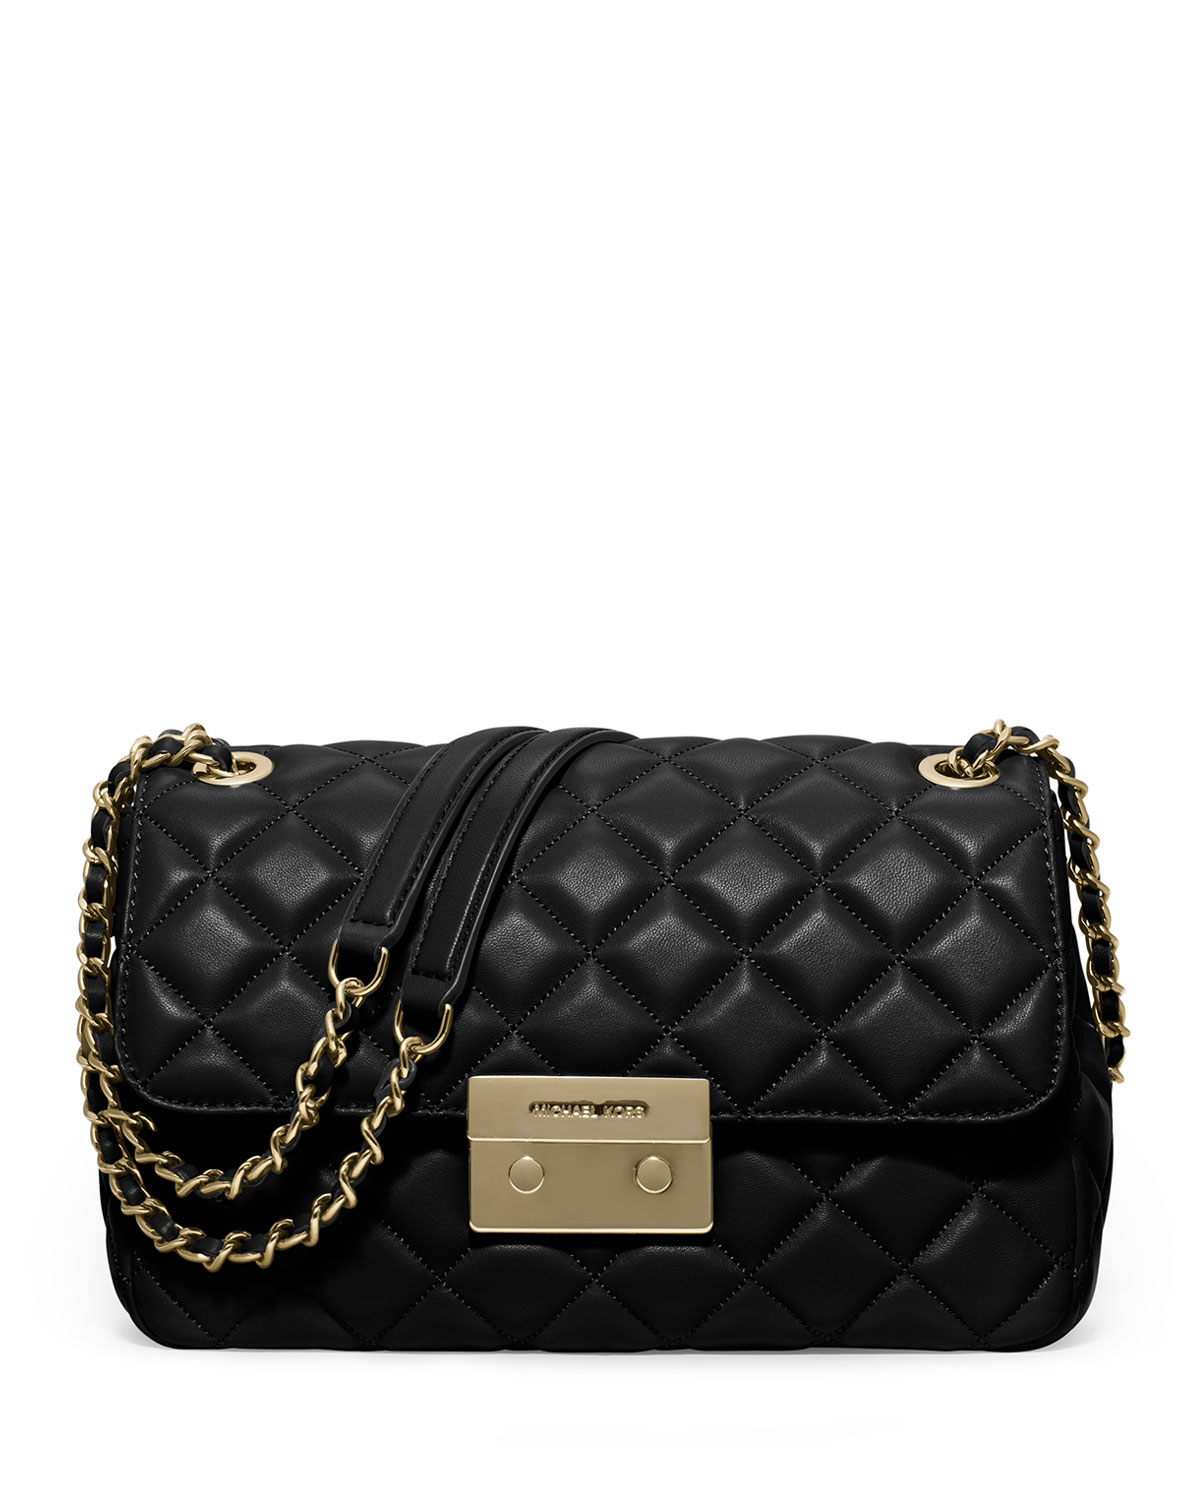 aa0aa0b2a3 MICHAEL Michael Kors Sloan Large Quilted Leather Shoulder Bag